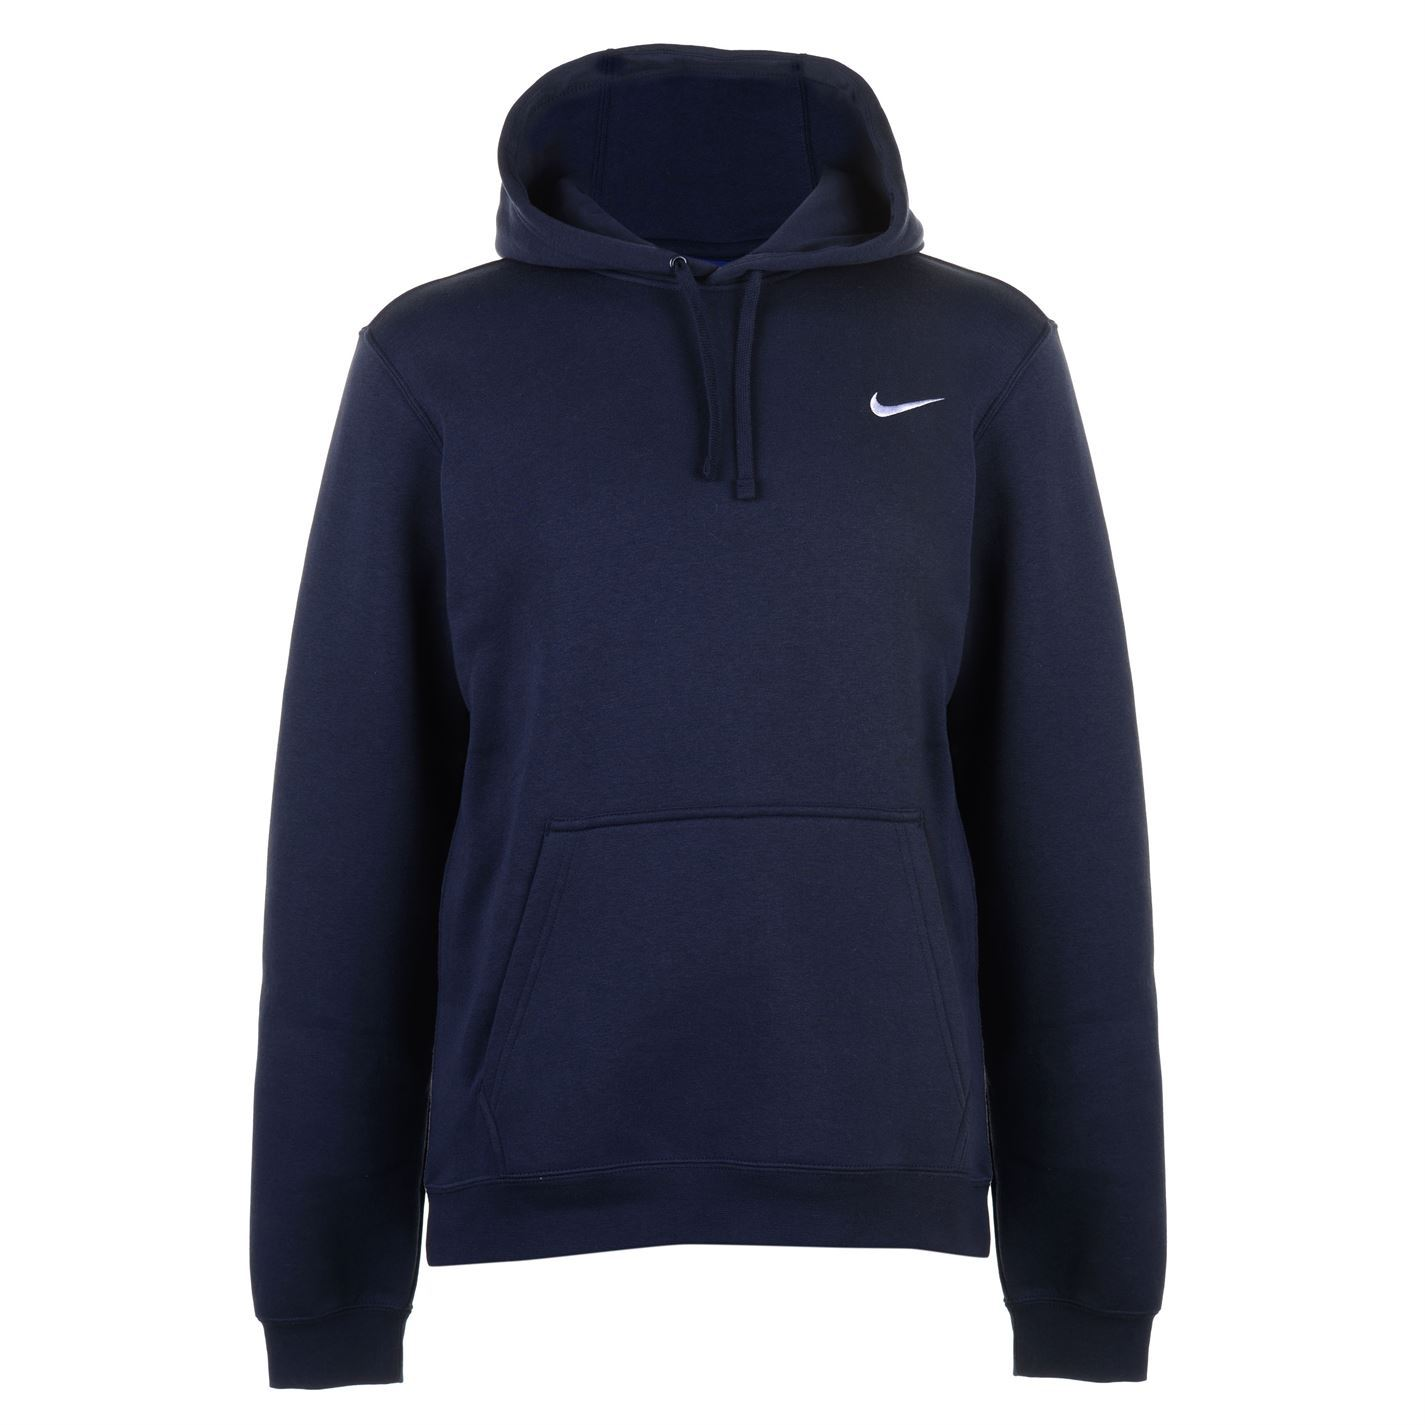 Nike-Fundamentals-Fleece-Lined-Pullover-Hoody-Mens-OTH-Hoodie-Sweatshirt-Sweater thumbnail 11